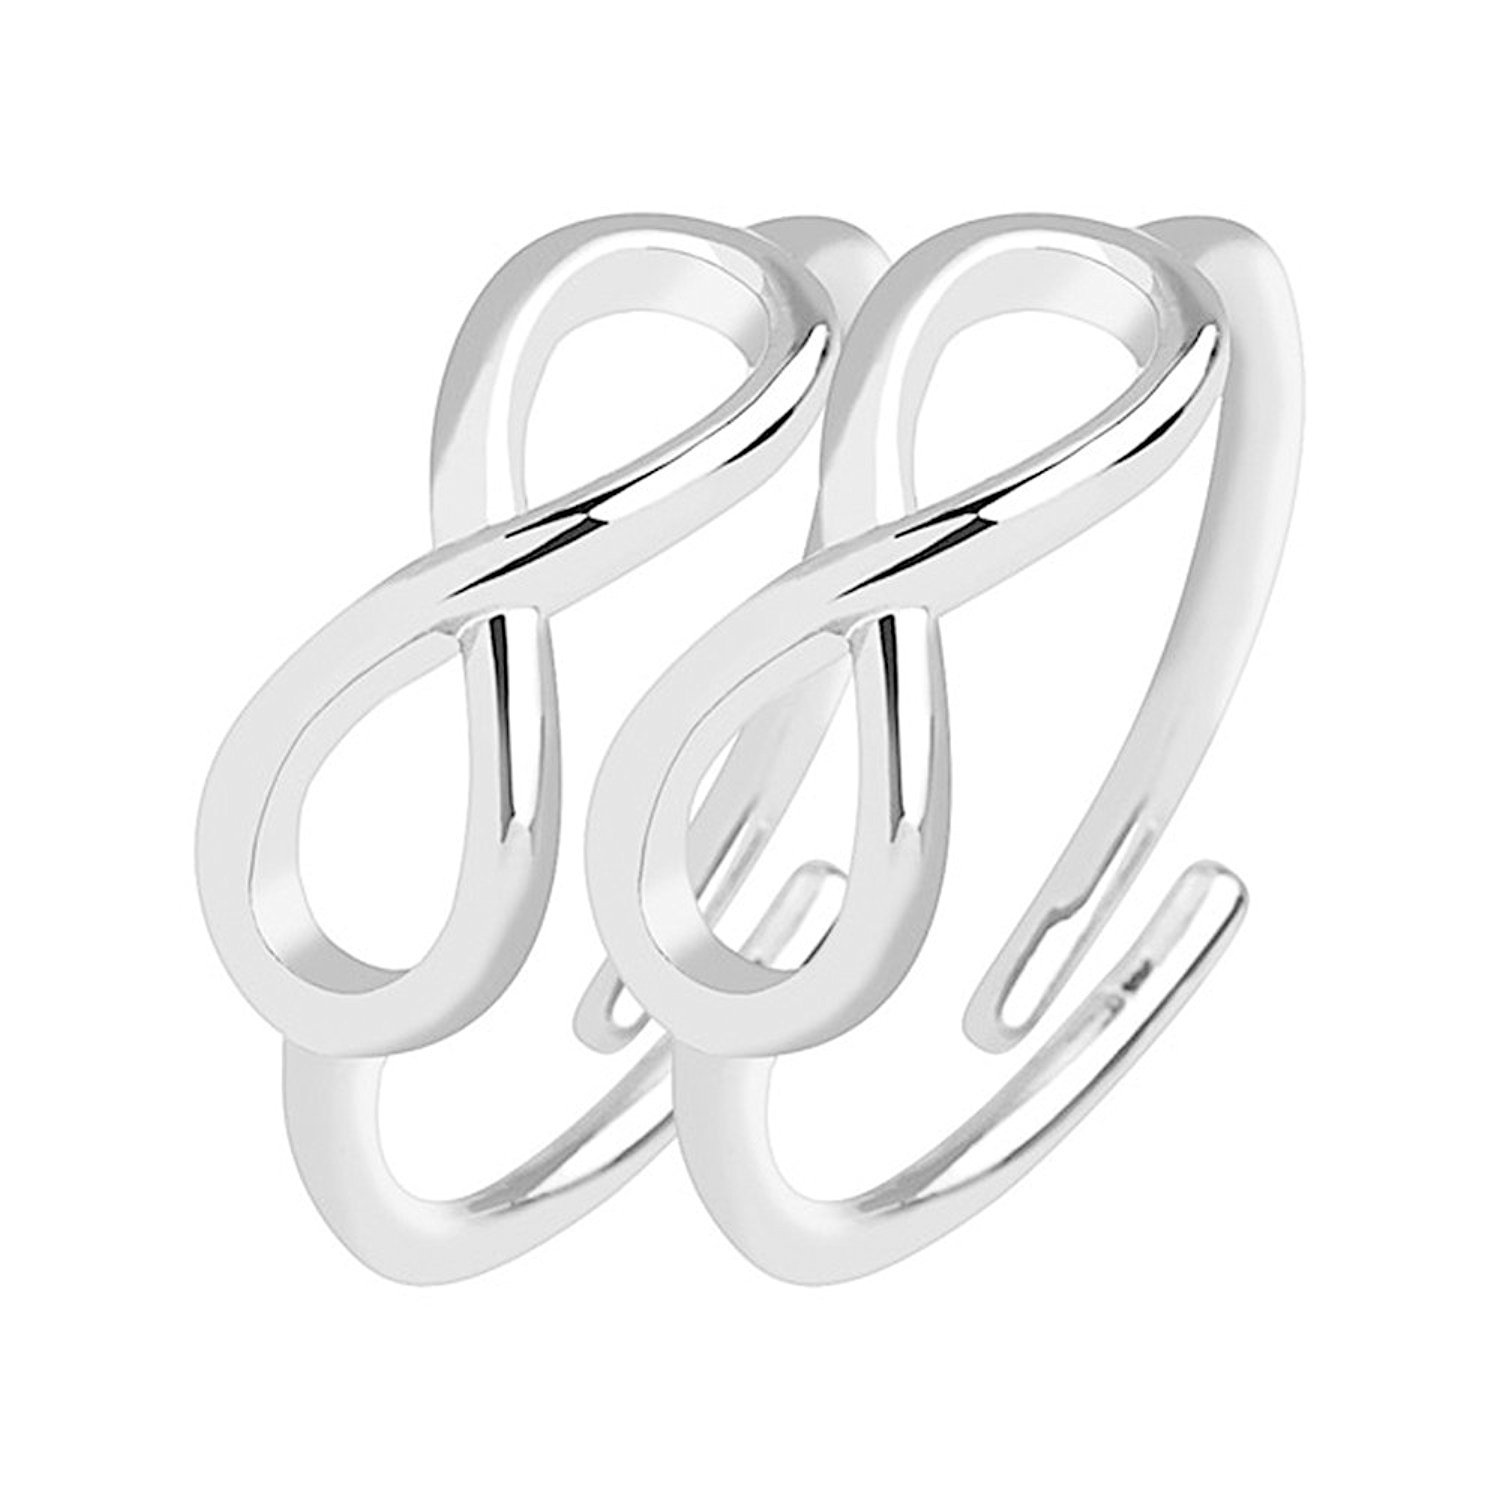 BodyJewelryOnline Pair of Infinity Symbol Adjustable Rhodium-Plated Brass Mid-Ring/Toe-Rings R-A022